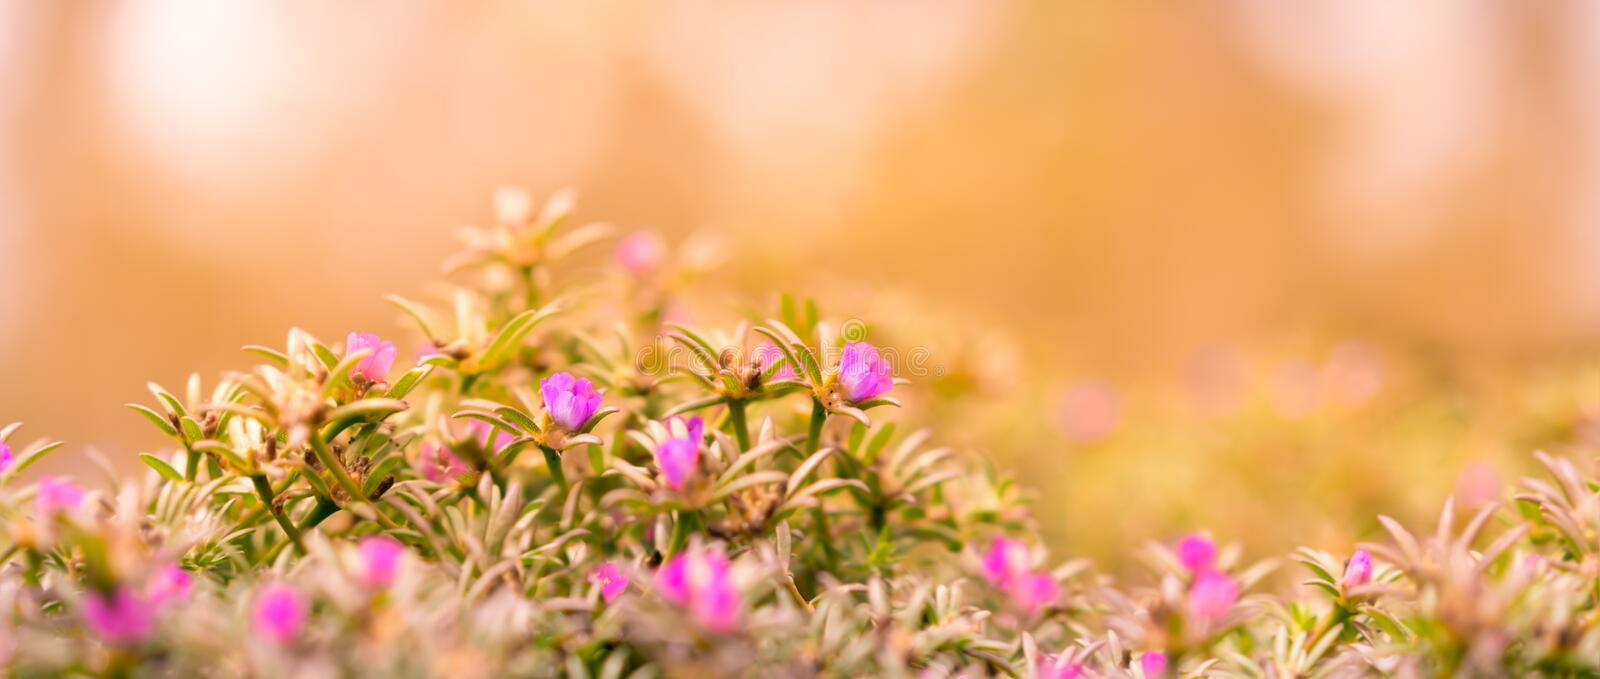 Good Morning Banner Background. With pink Portulaca flowers and yellow and orange tones royalty free stock images